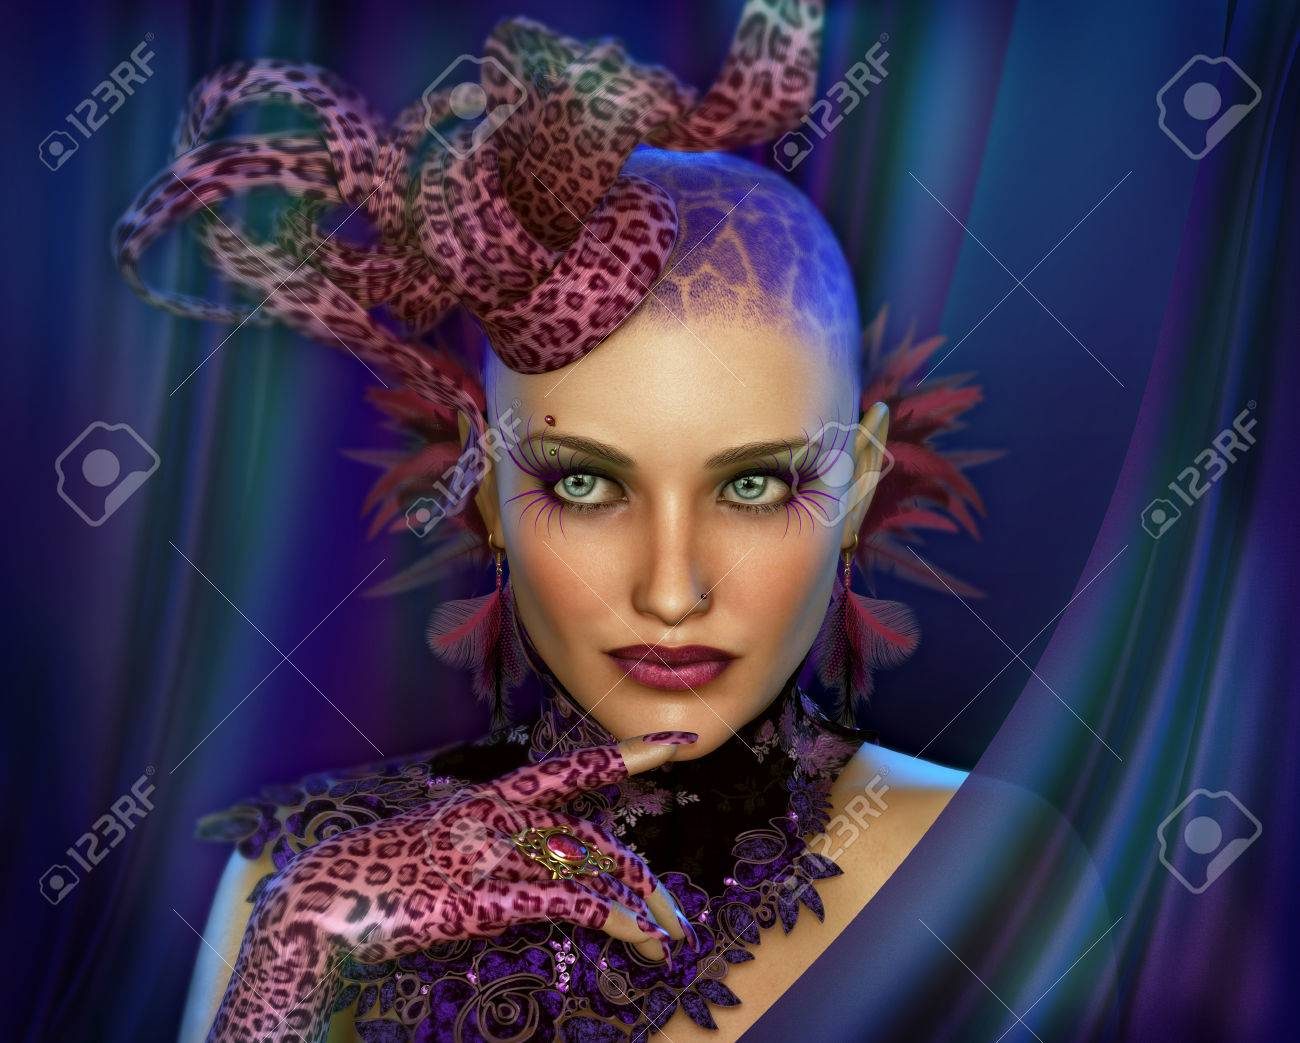 3D computer graphics of a Portrait of a Lady with Animal Print Fascinator  and Gloves Stock af45a845823